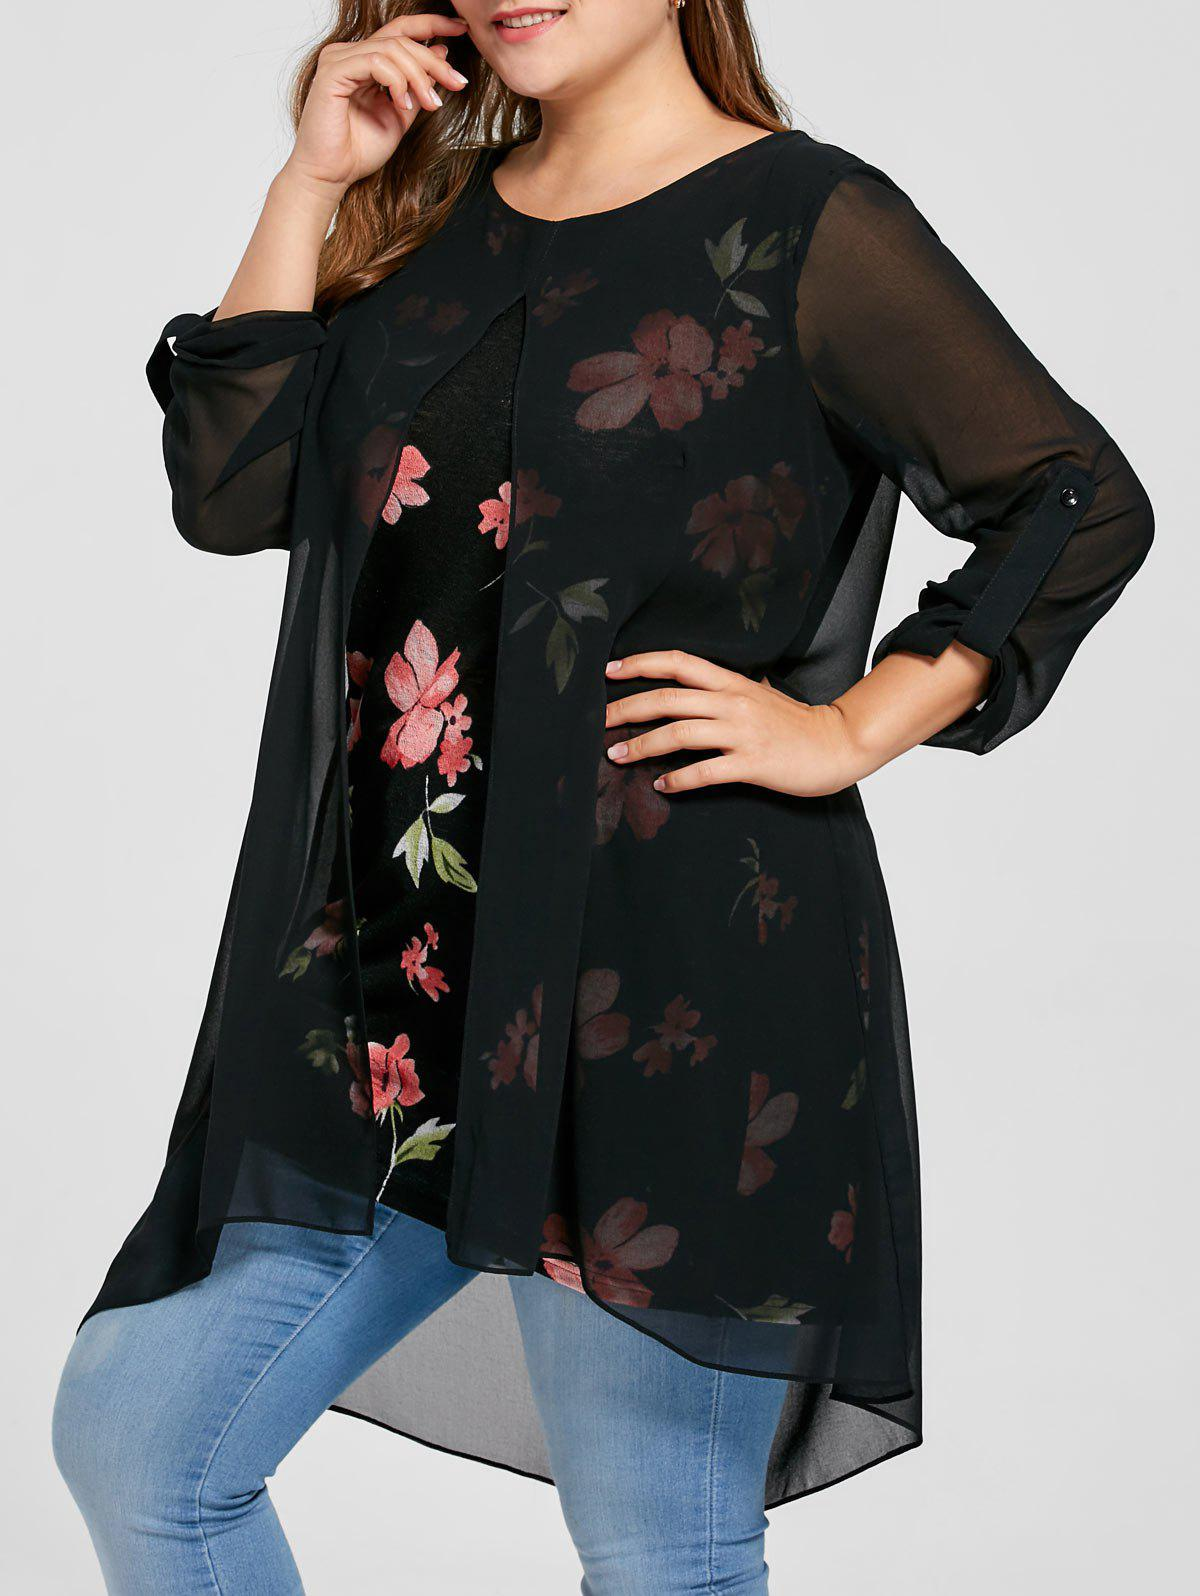 Plus Size Front Slit Floral Longline BlouseWOMEN<br><br>Size: 4XL; Color: BLACK; Material: Polyester; Shirt Length: Long; Sleeve Length: Full; Collar: Round Neck; Style: Fashion; Season: Fall,Spring,Summer; Pattern Type: Floral; Weight: 0.3000kg; Package Contents: 1 x Blouse;